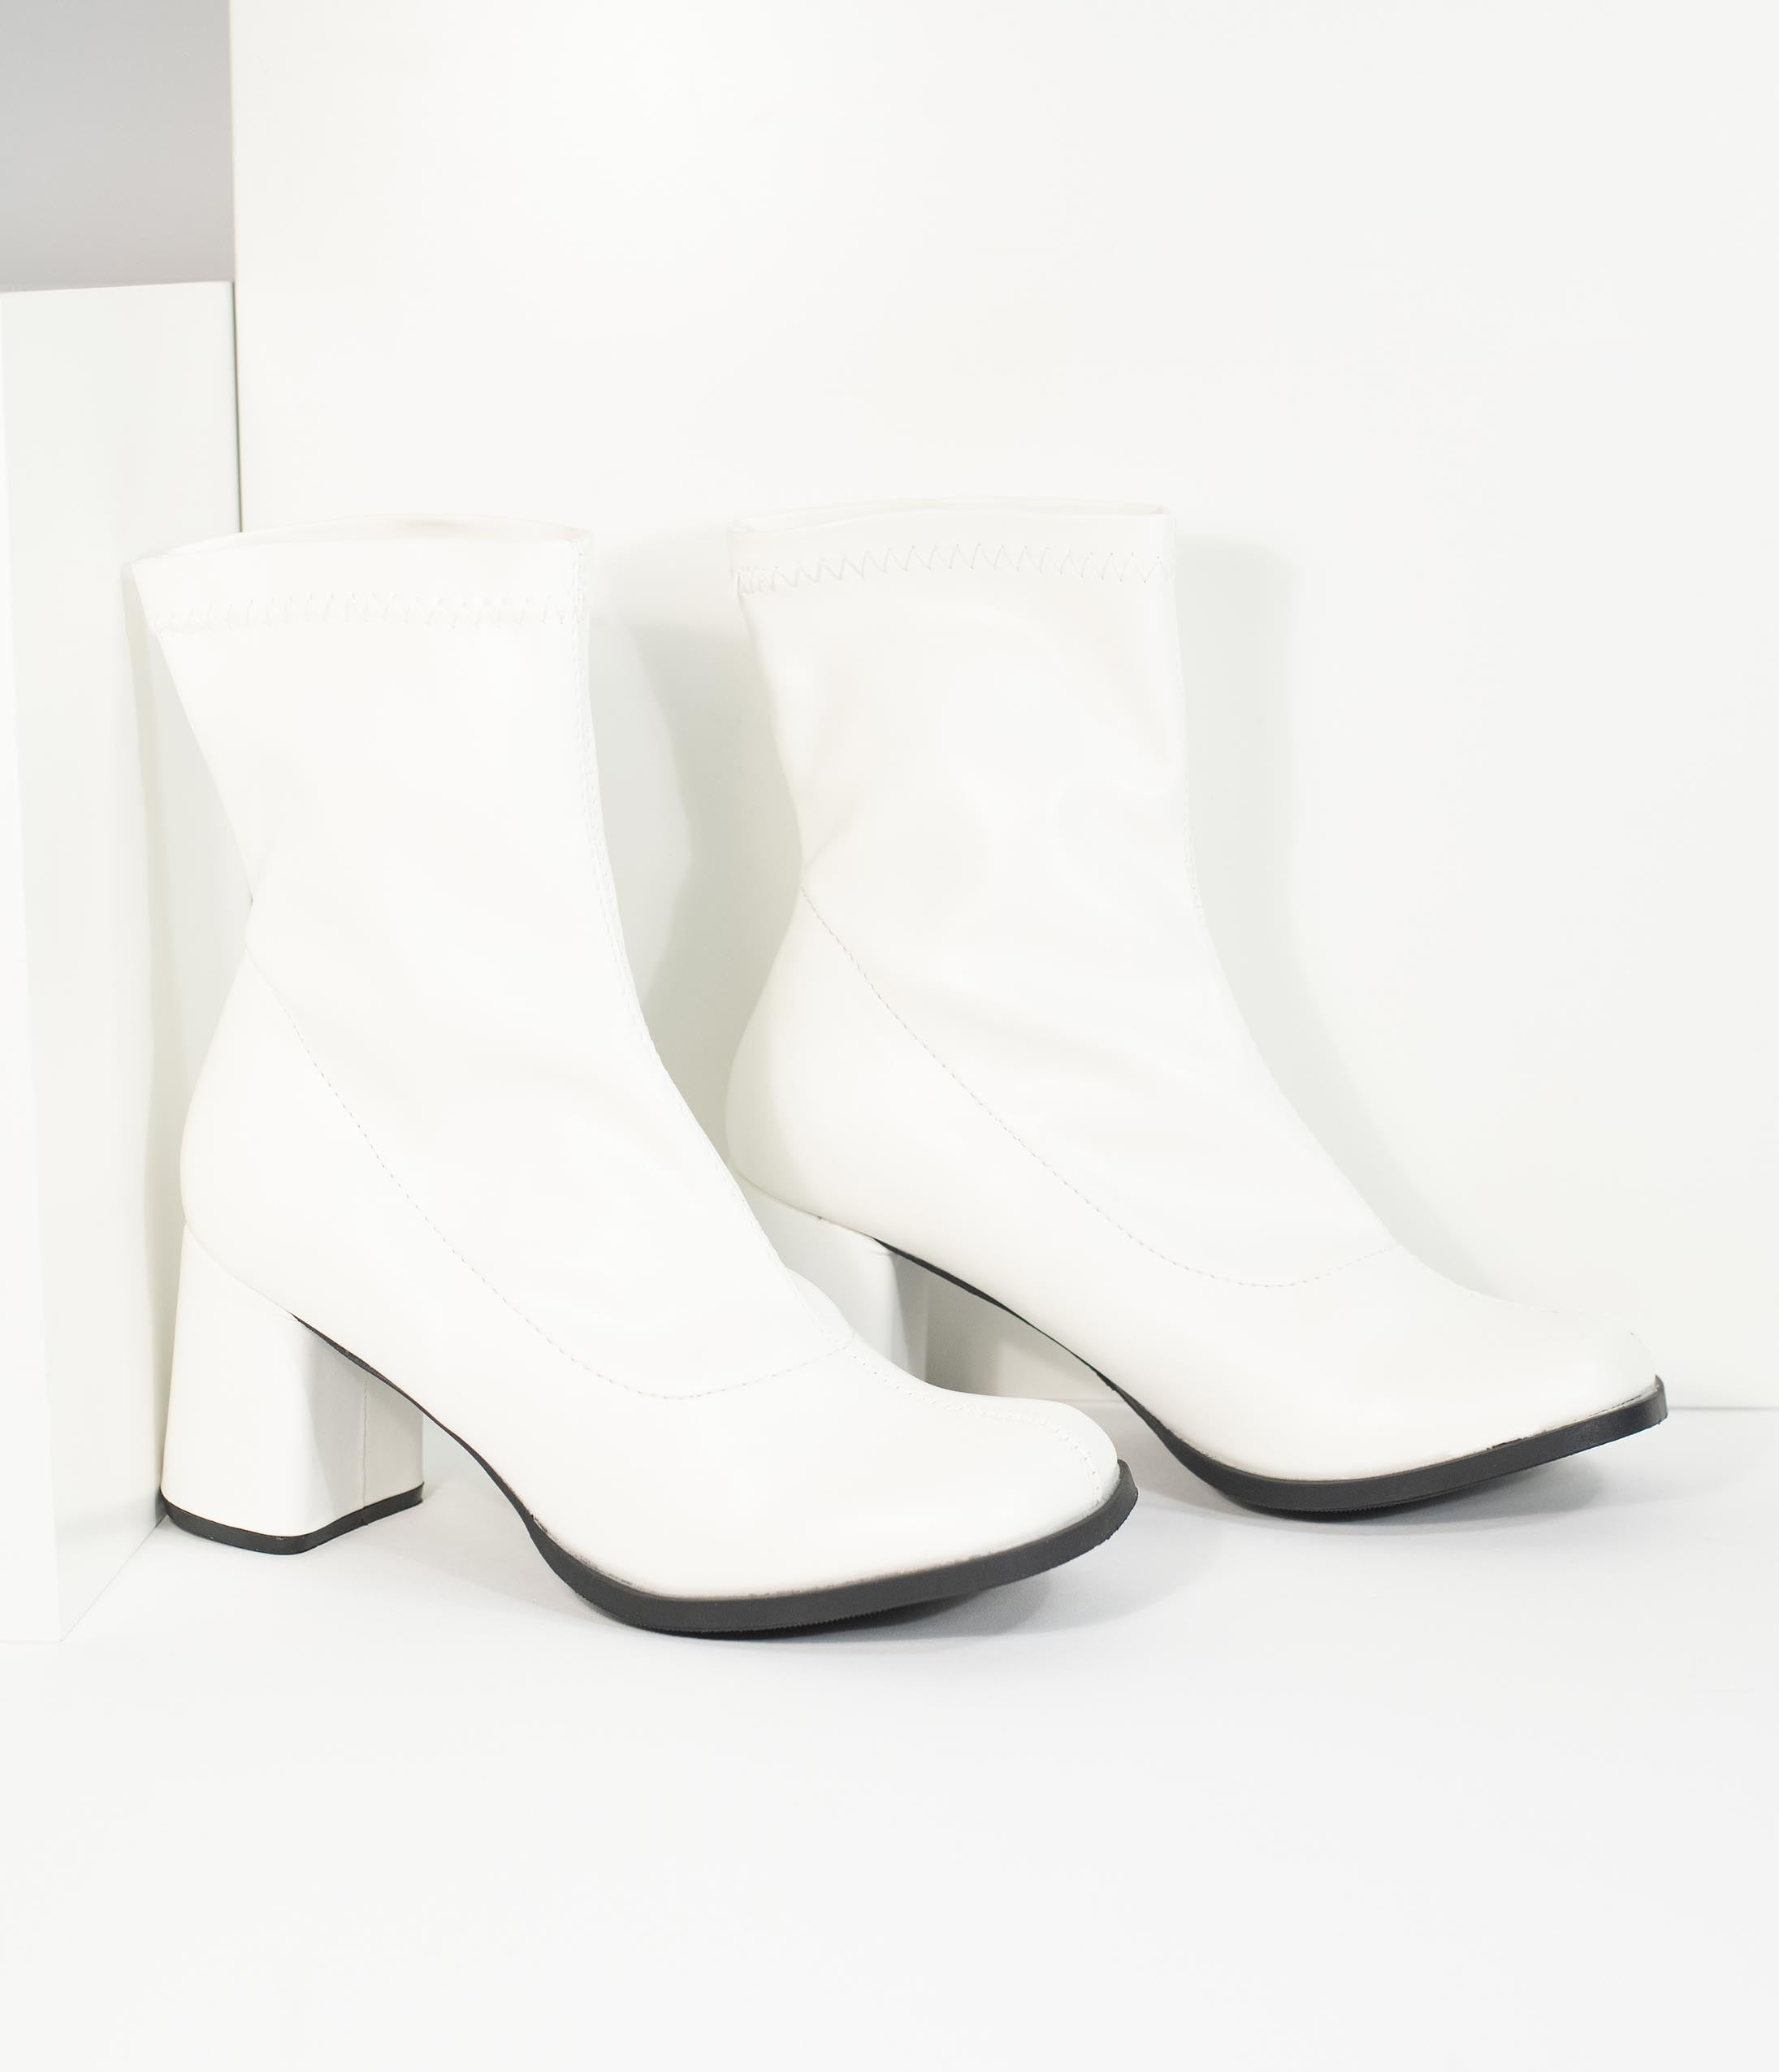 Vintage Style Shoes, Vintage Inspired Shoes Retro Style White Matte Leatherette Ankle Go Go Boots $46.00 AT vintagedancer.com